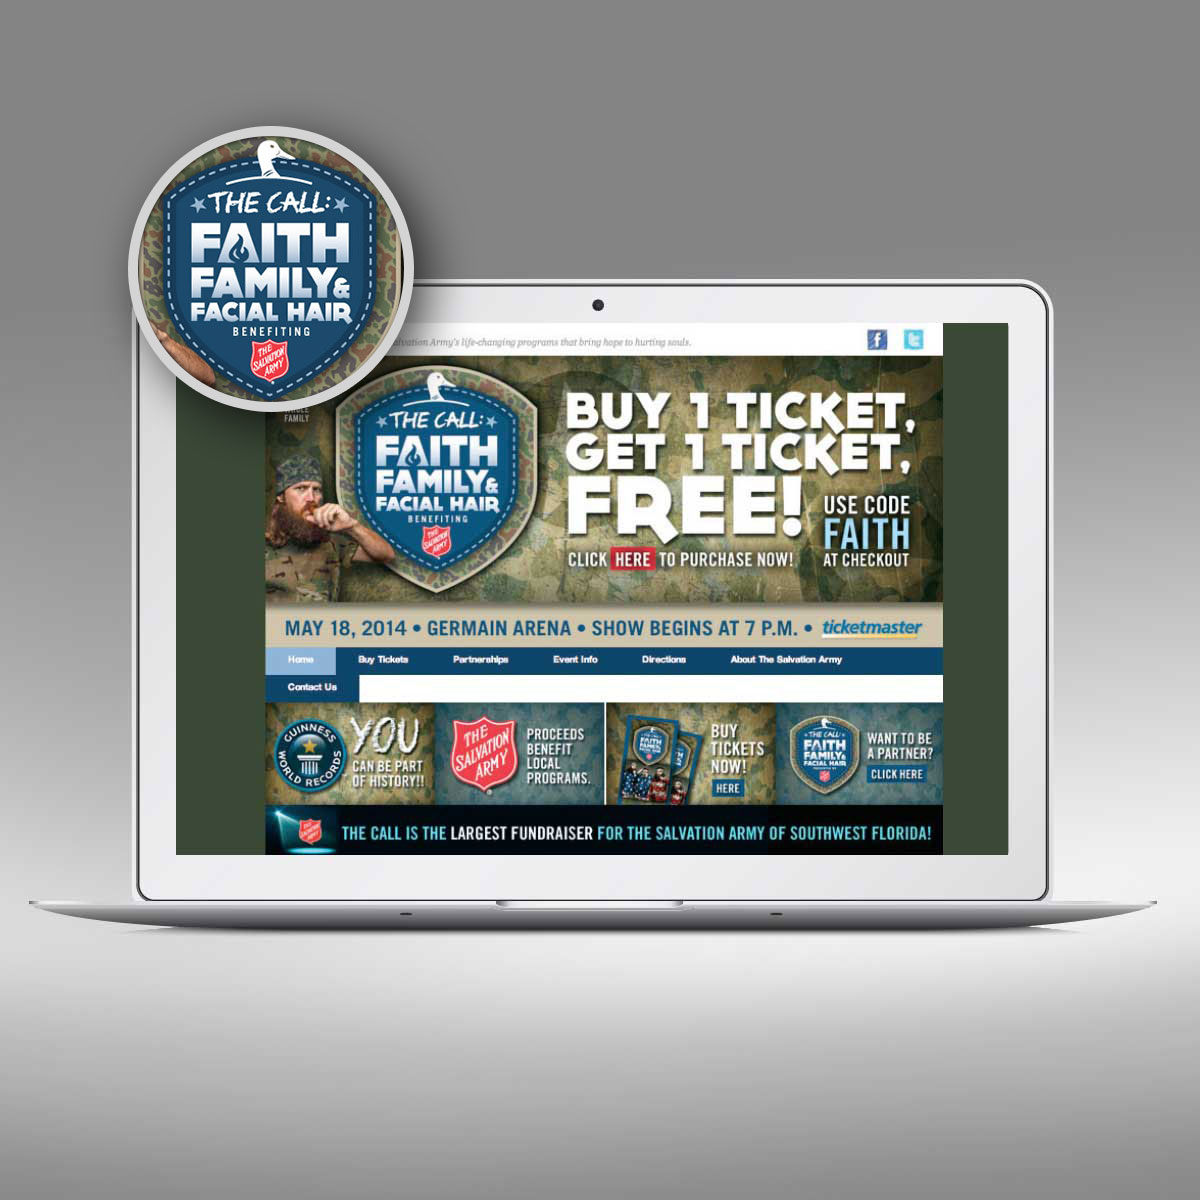 The Call will benefit The Salvation Army, Website by Priority Marketing